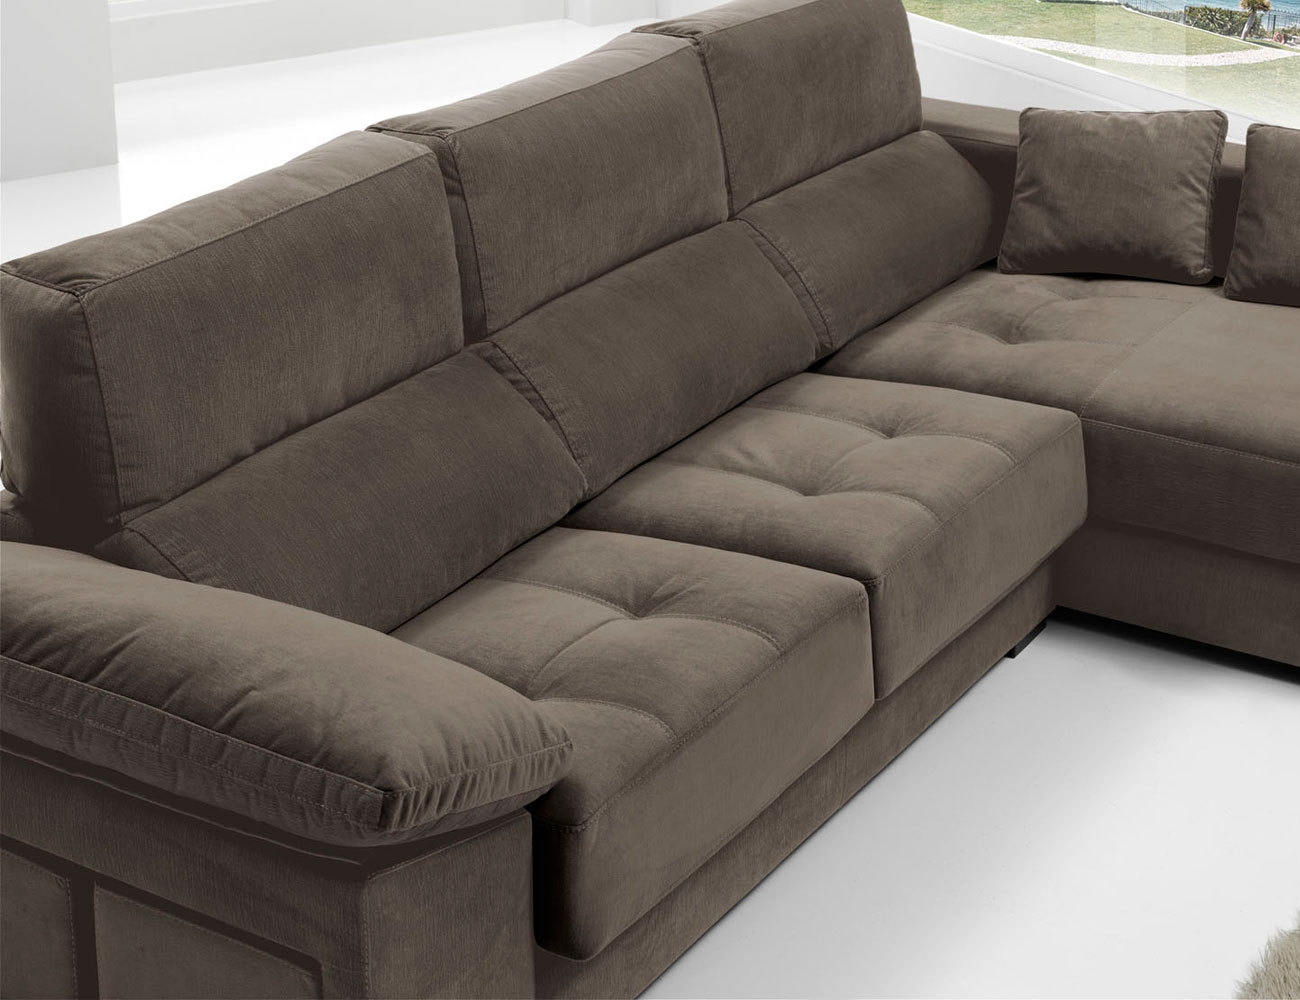 Sofa chaiselongue anti manchas bering pouf 210